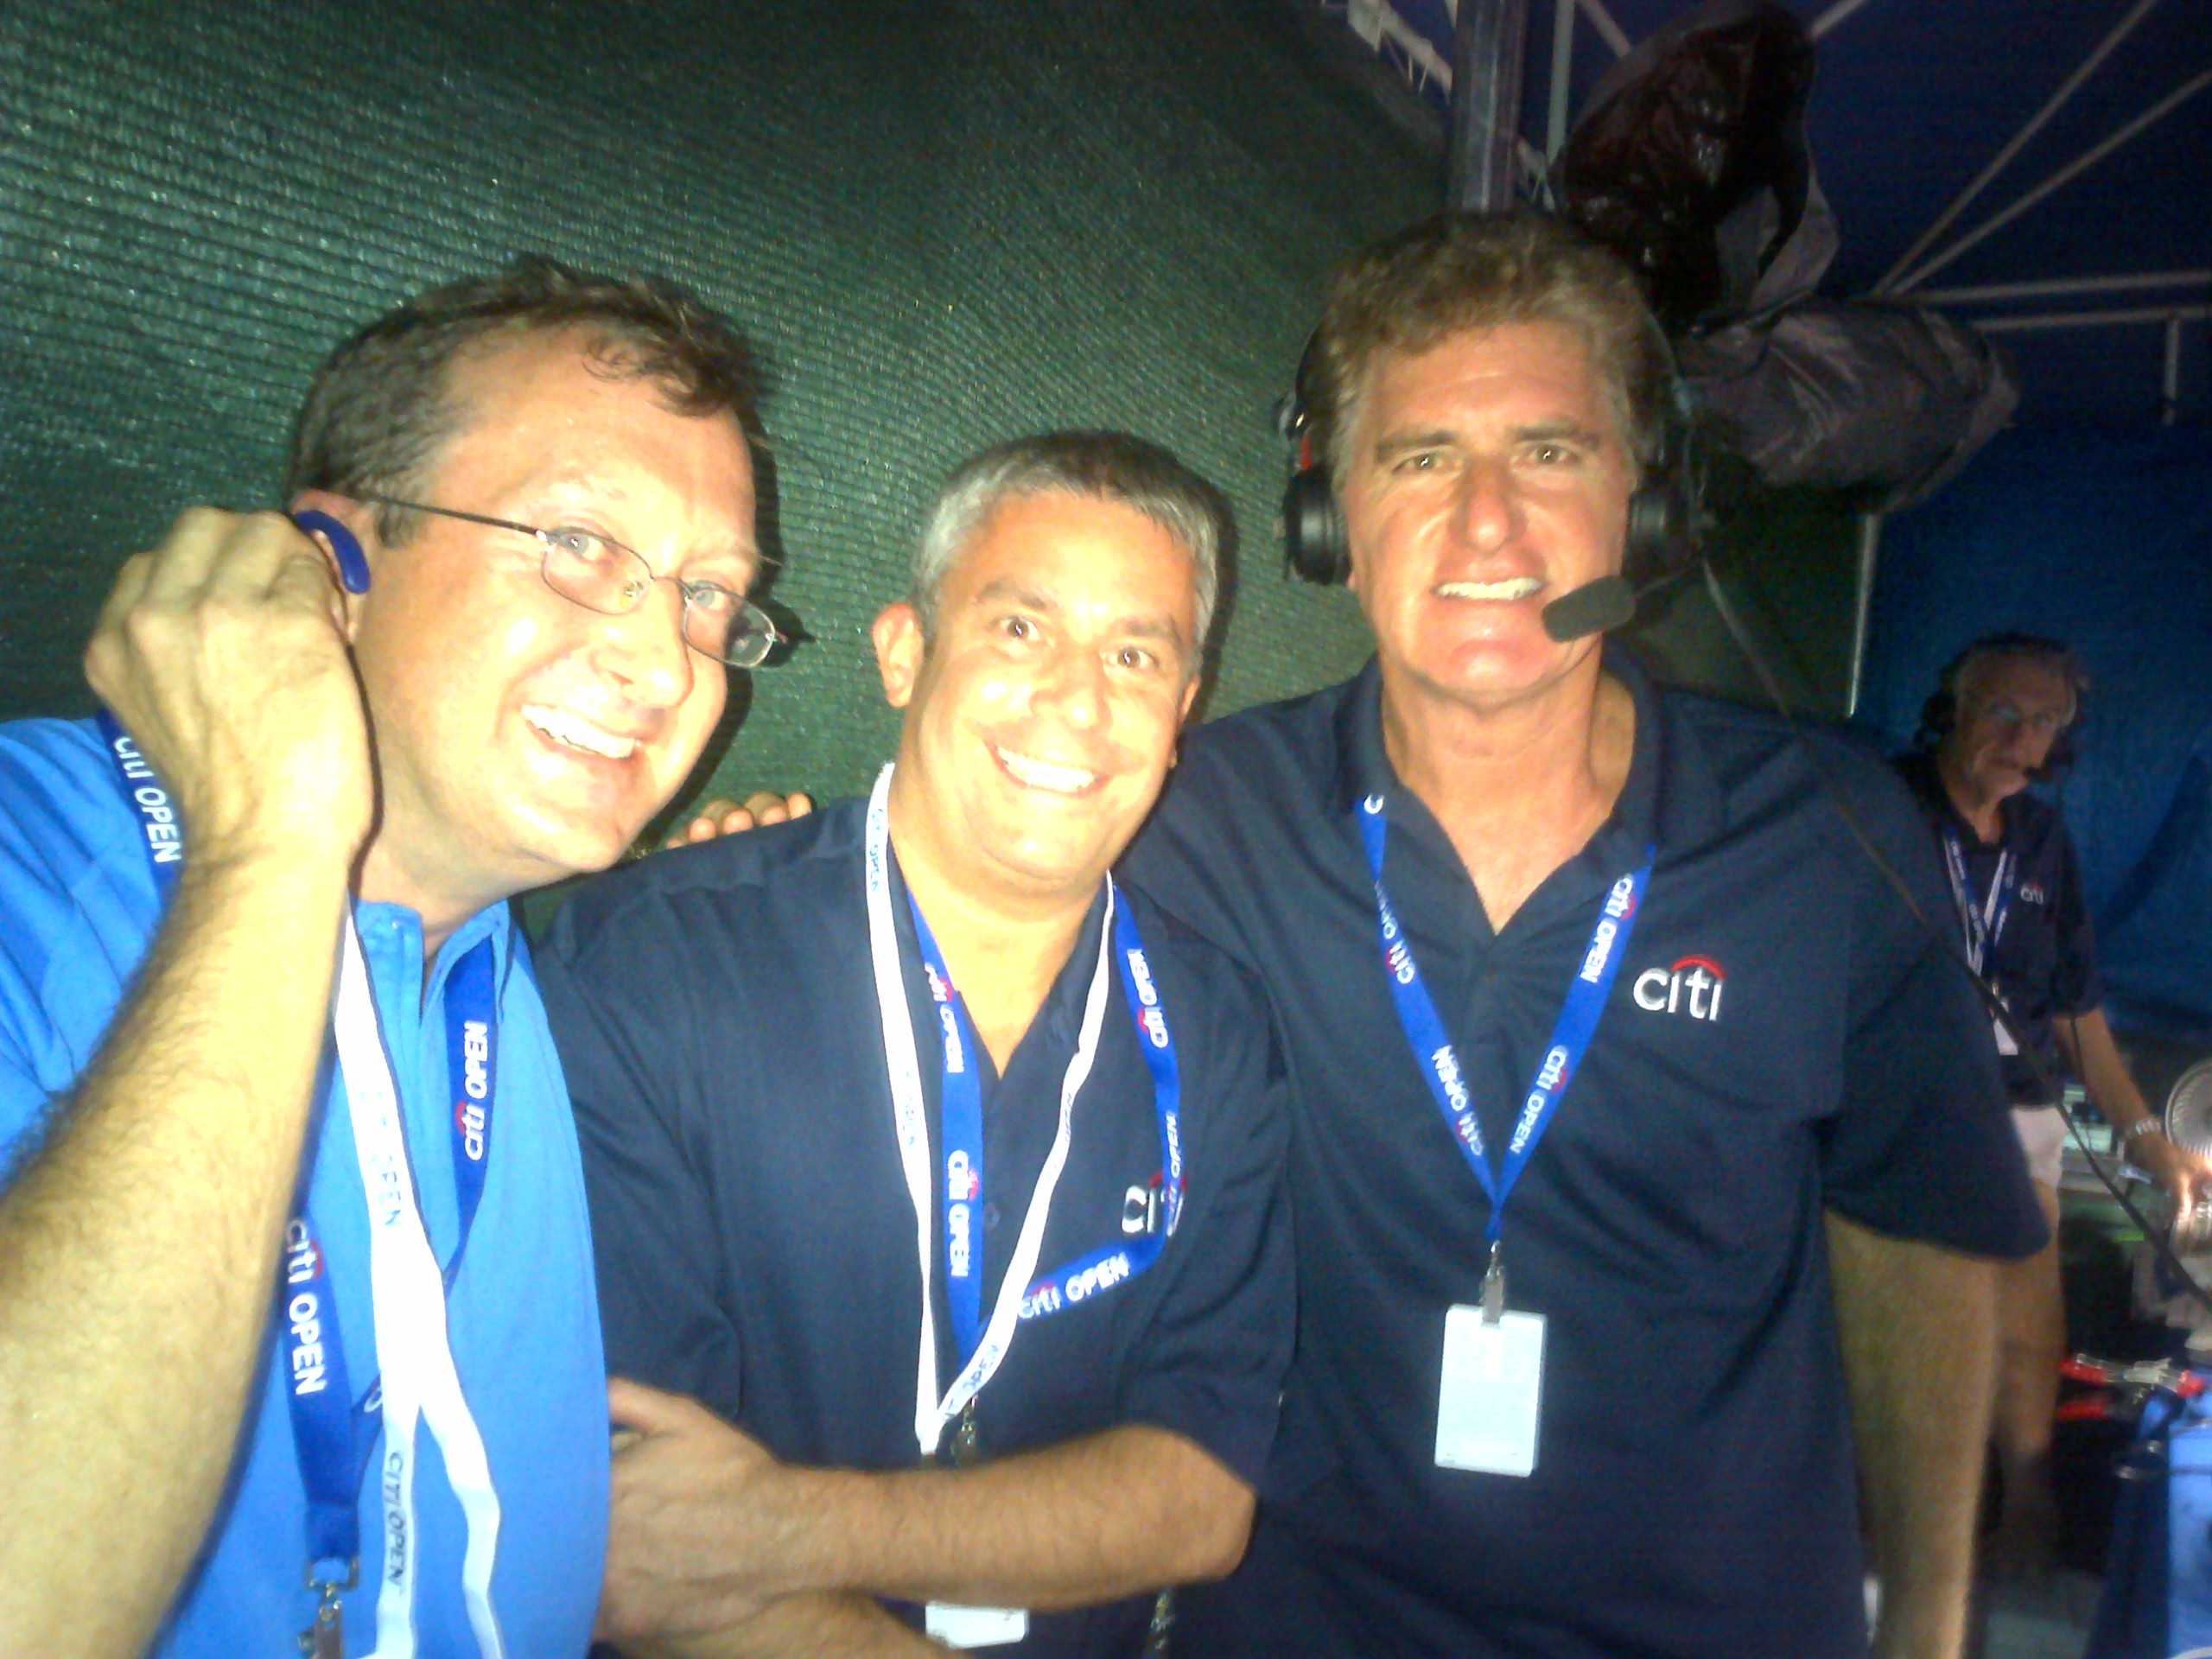 CitiOpen Radio, Doug Adler, Marc Sterne, Washington 2012